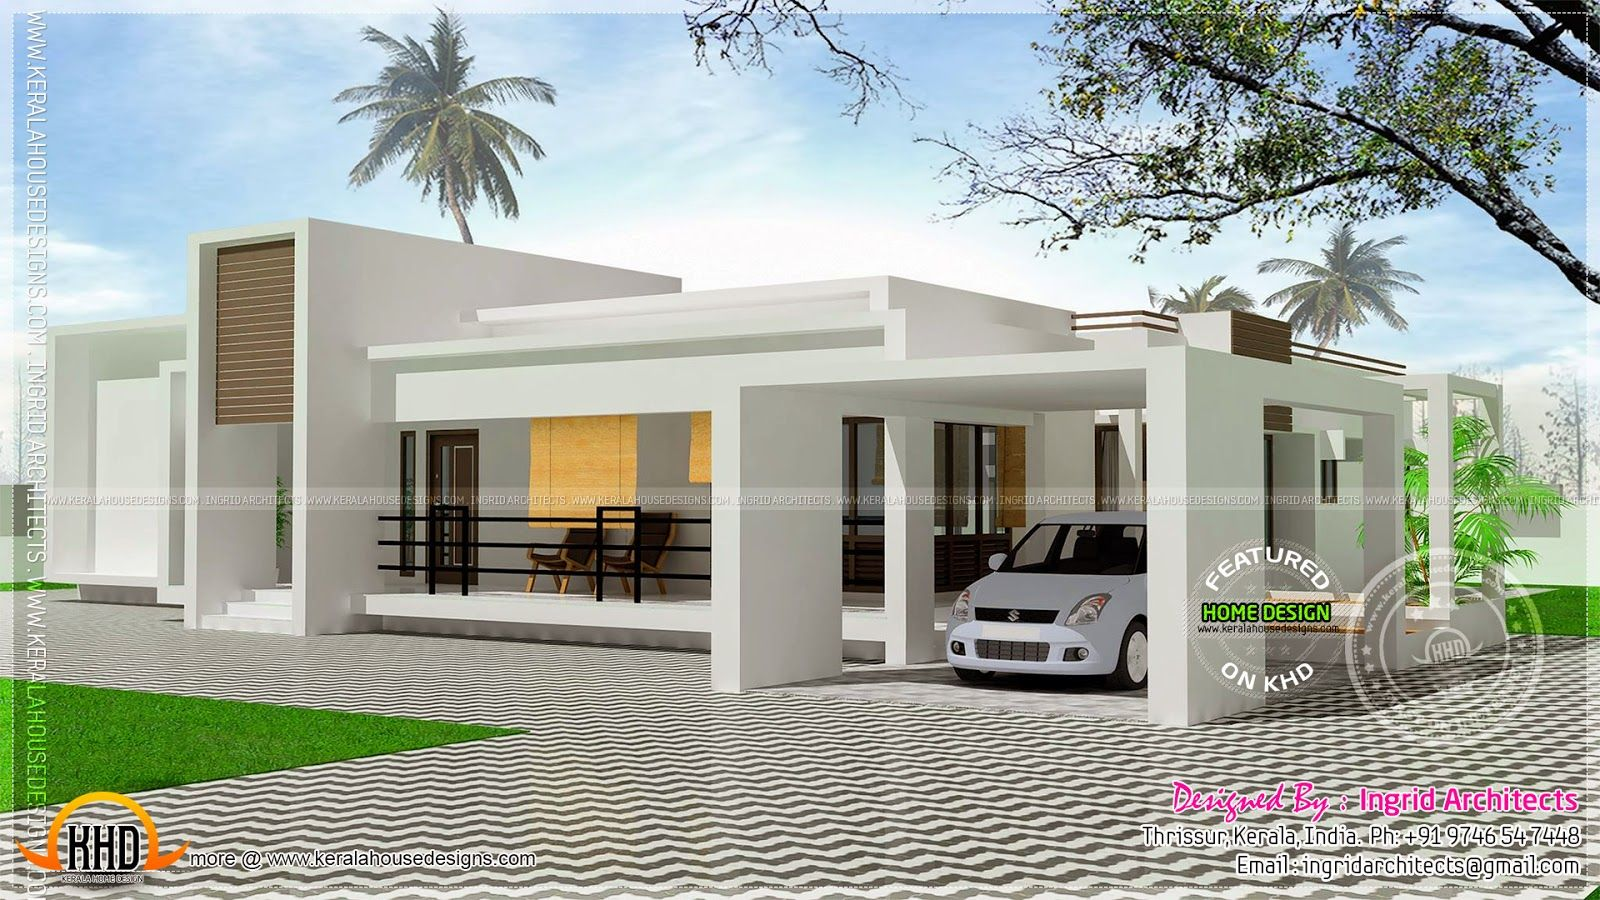 1200 sq ft Rs18 lakhs cost estimated house